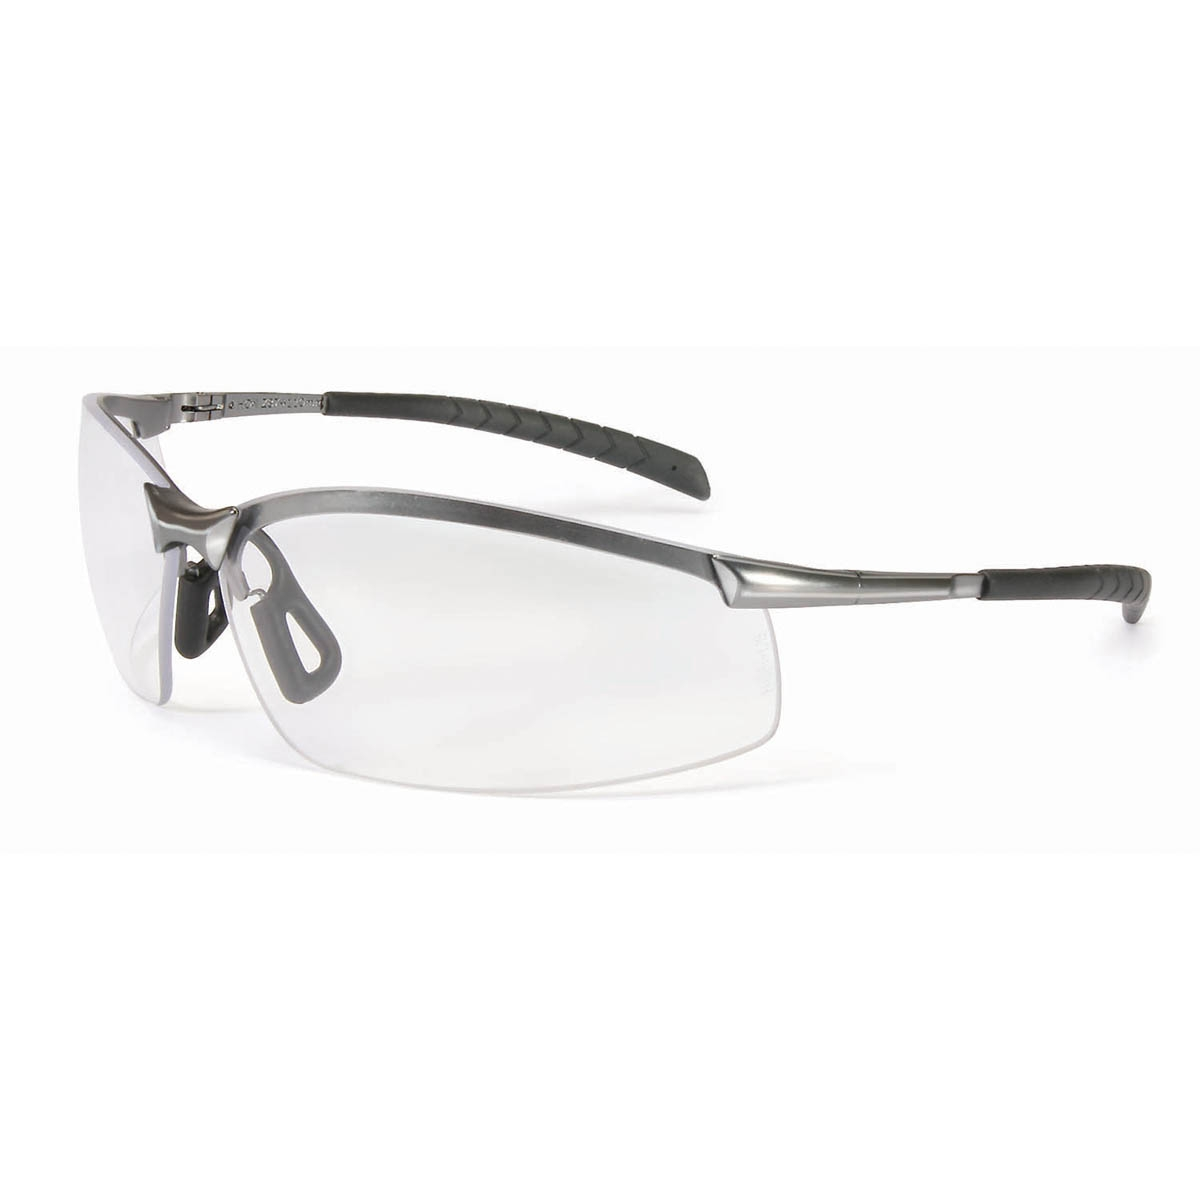 north safety gx 8 safety glasses metal frame clear lens